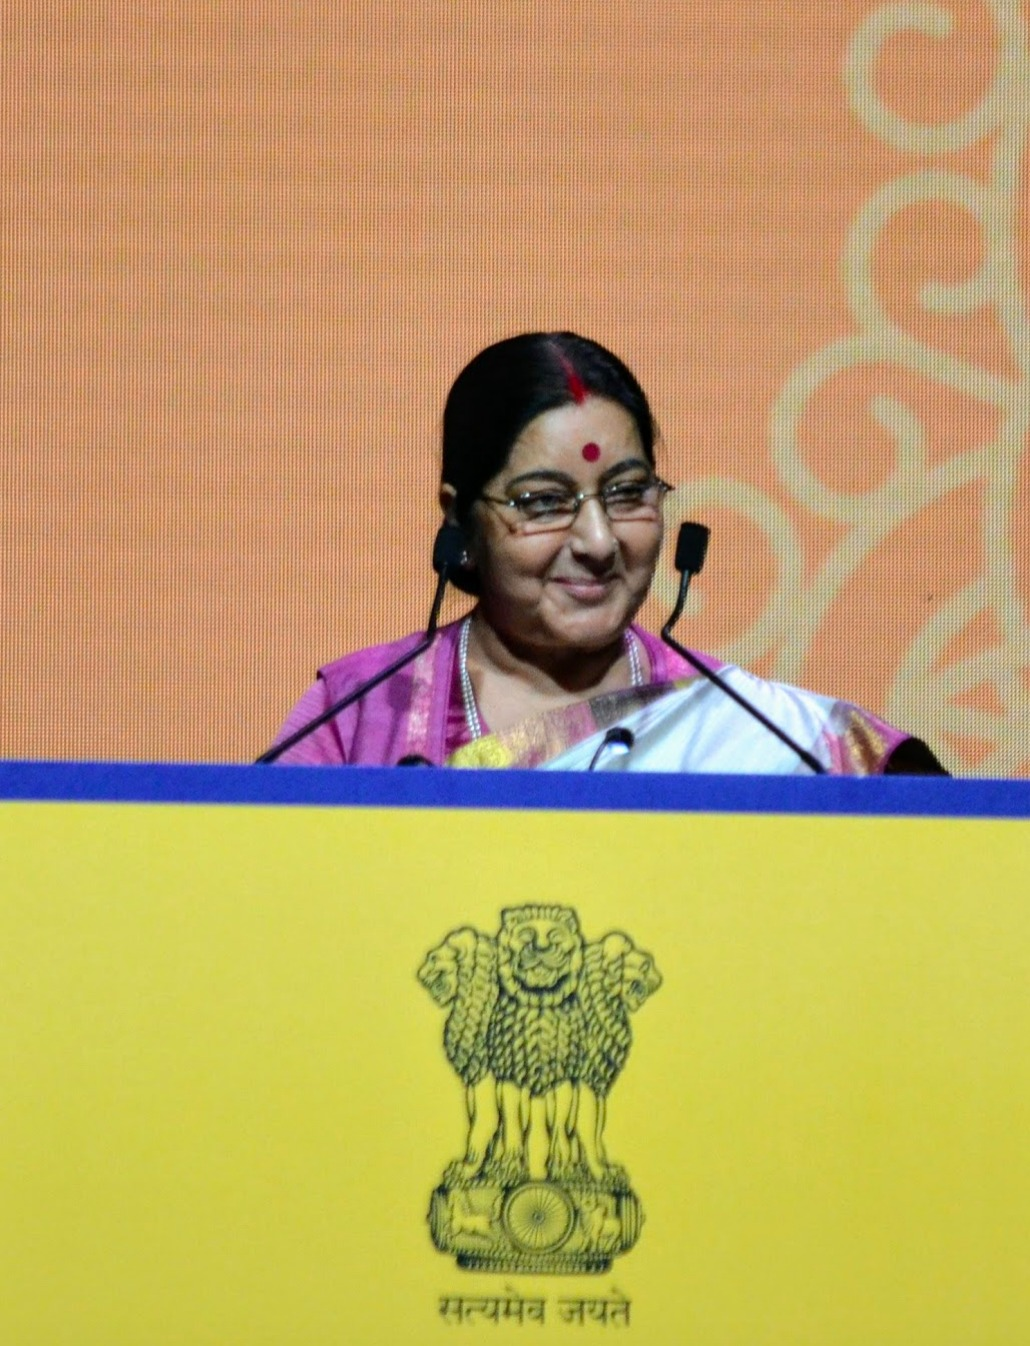 Former EAM, the late Sushma Swaraj speaking to the Indian diaspora during the Pravasi Bharatiya Divas in Singapore in 2018. File photo courtesy: Connected to India